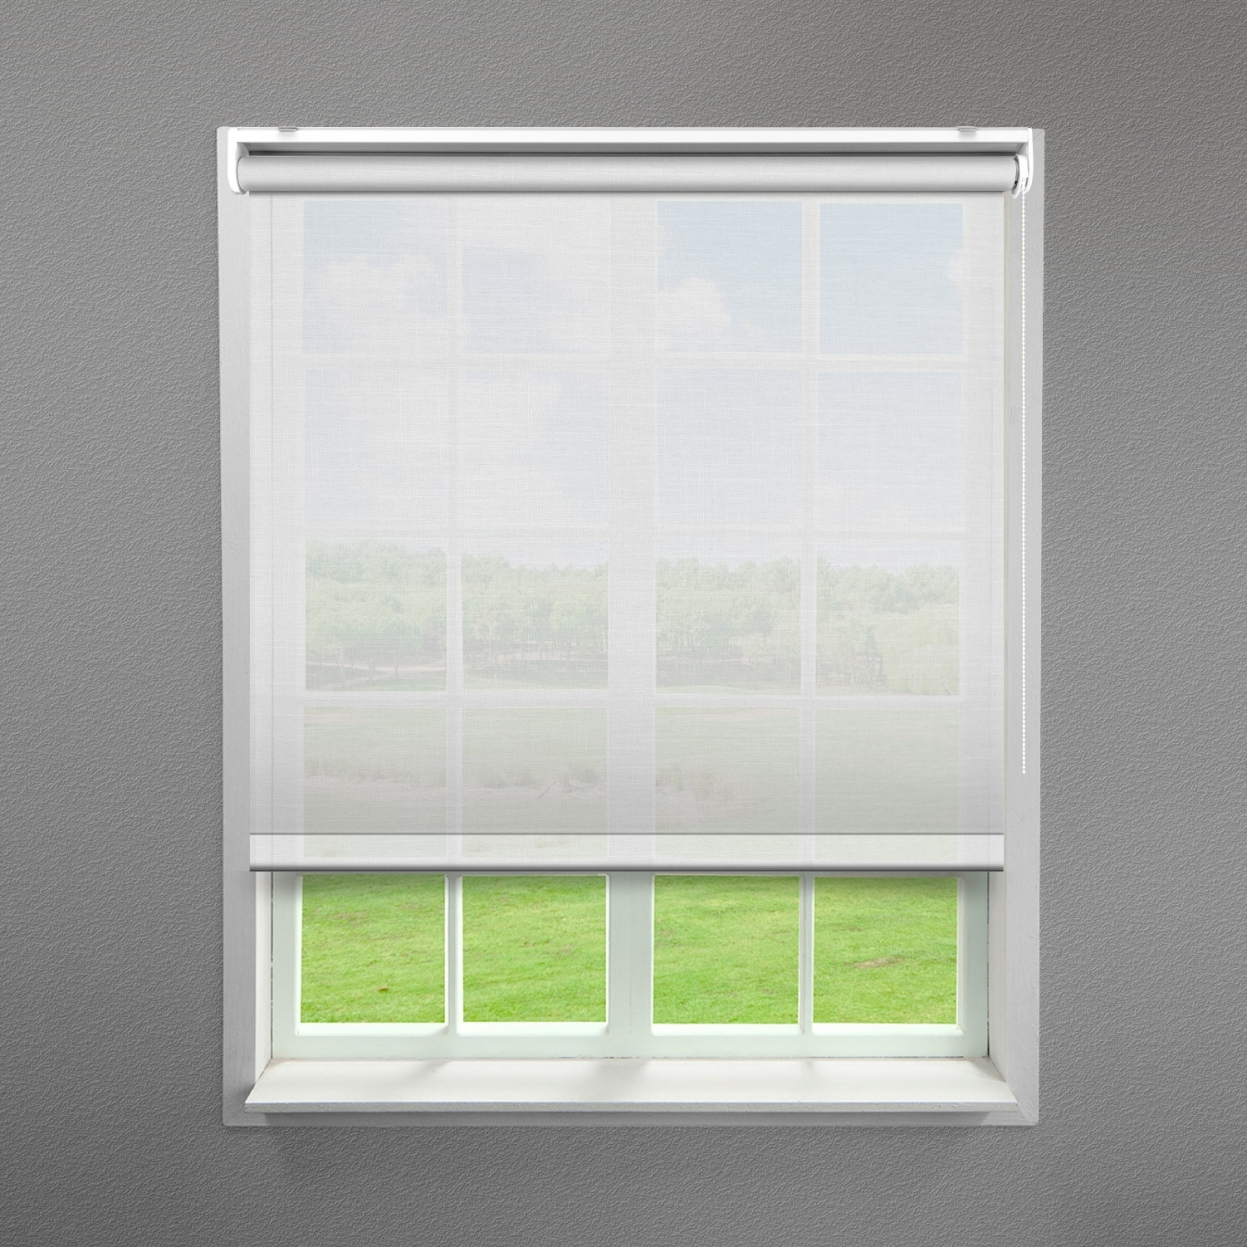 White Tulle Sheer Roller Blind Blinds4value Regarding Sheer Roller Blind (Image 15 of 15)